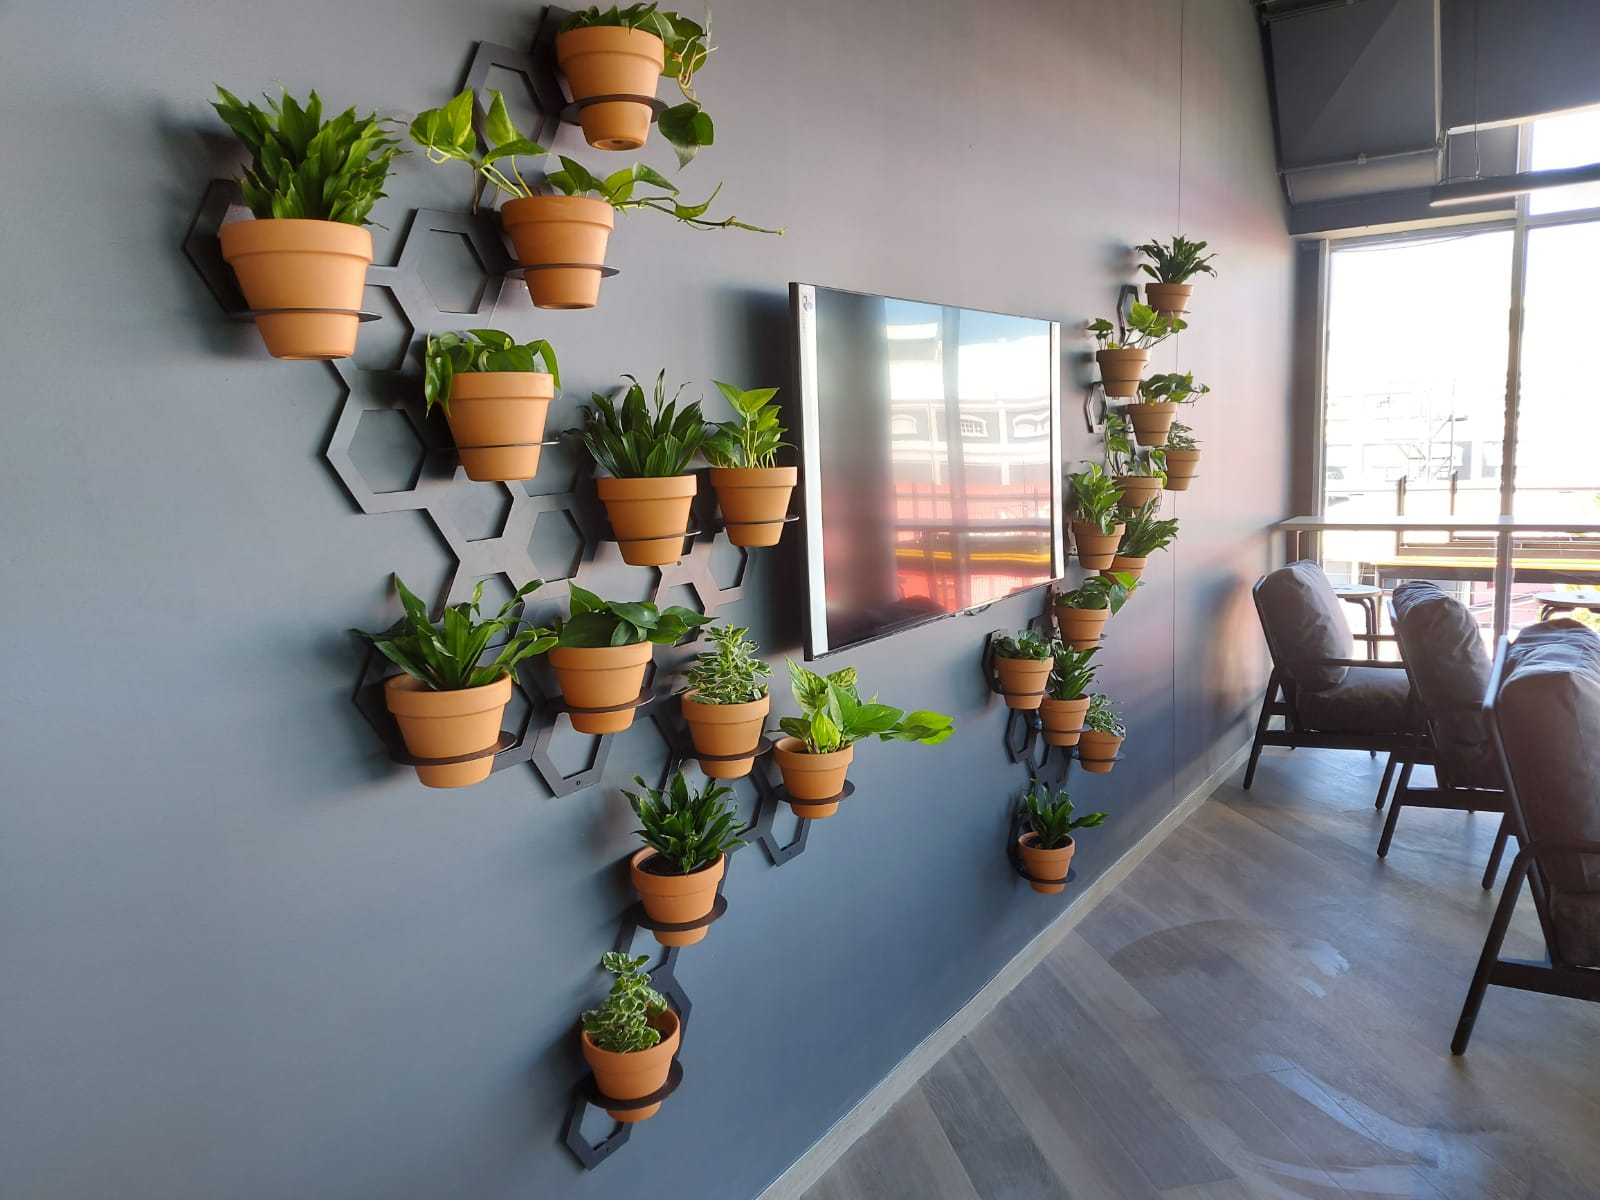 Honeycomb wall planters - plant accessories - provided by Living Green Walls